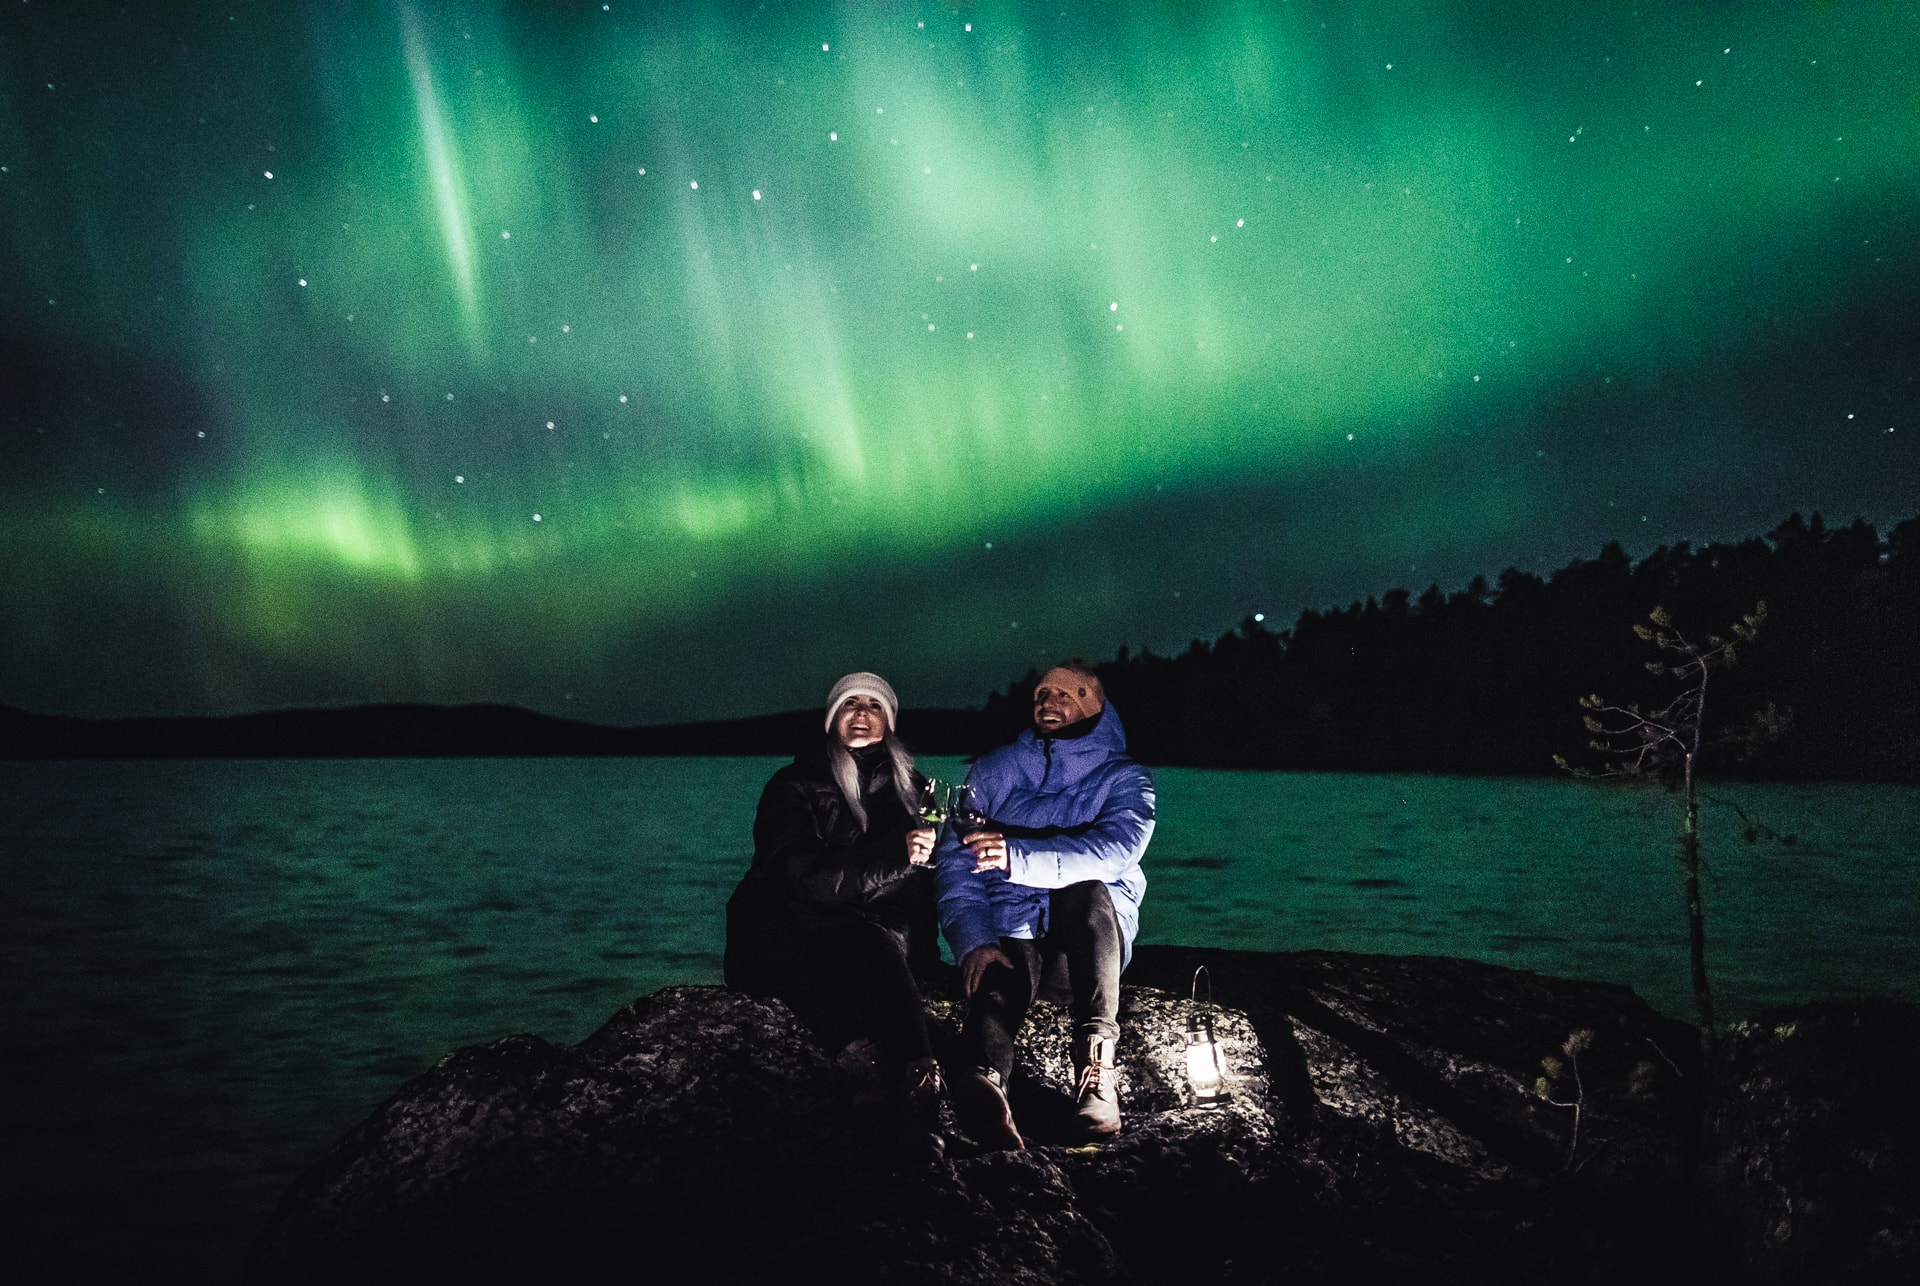 Our friends Mattia and Heini watching Aurora Borealis in Ivalo Lapland Finland.